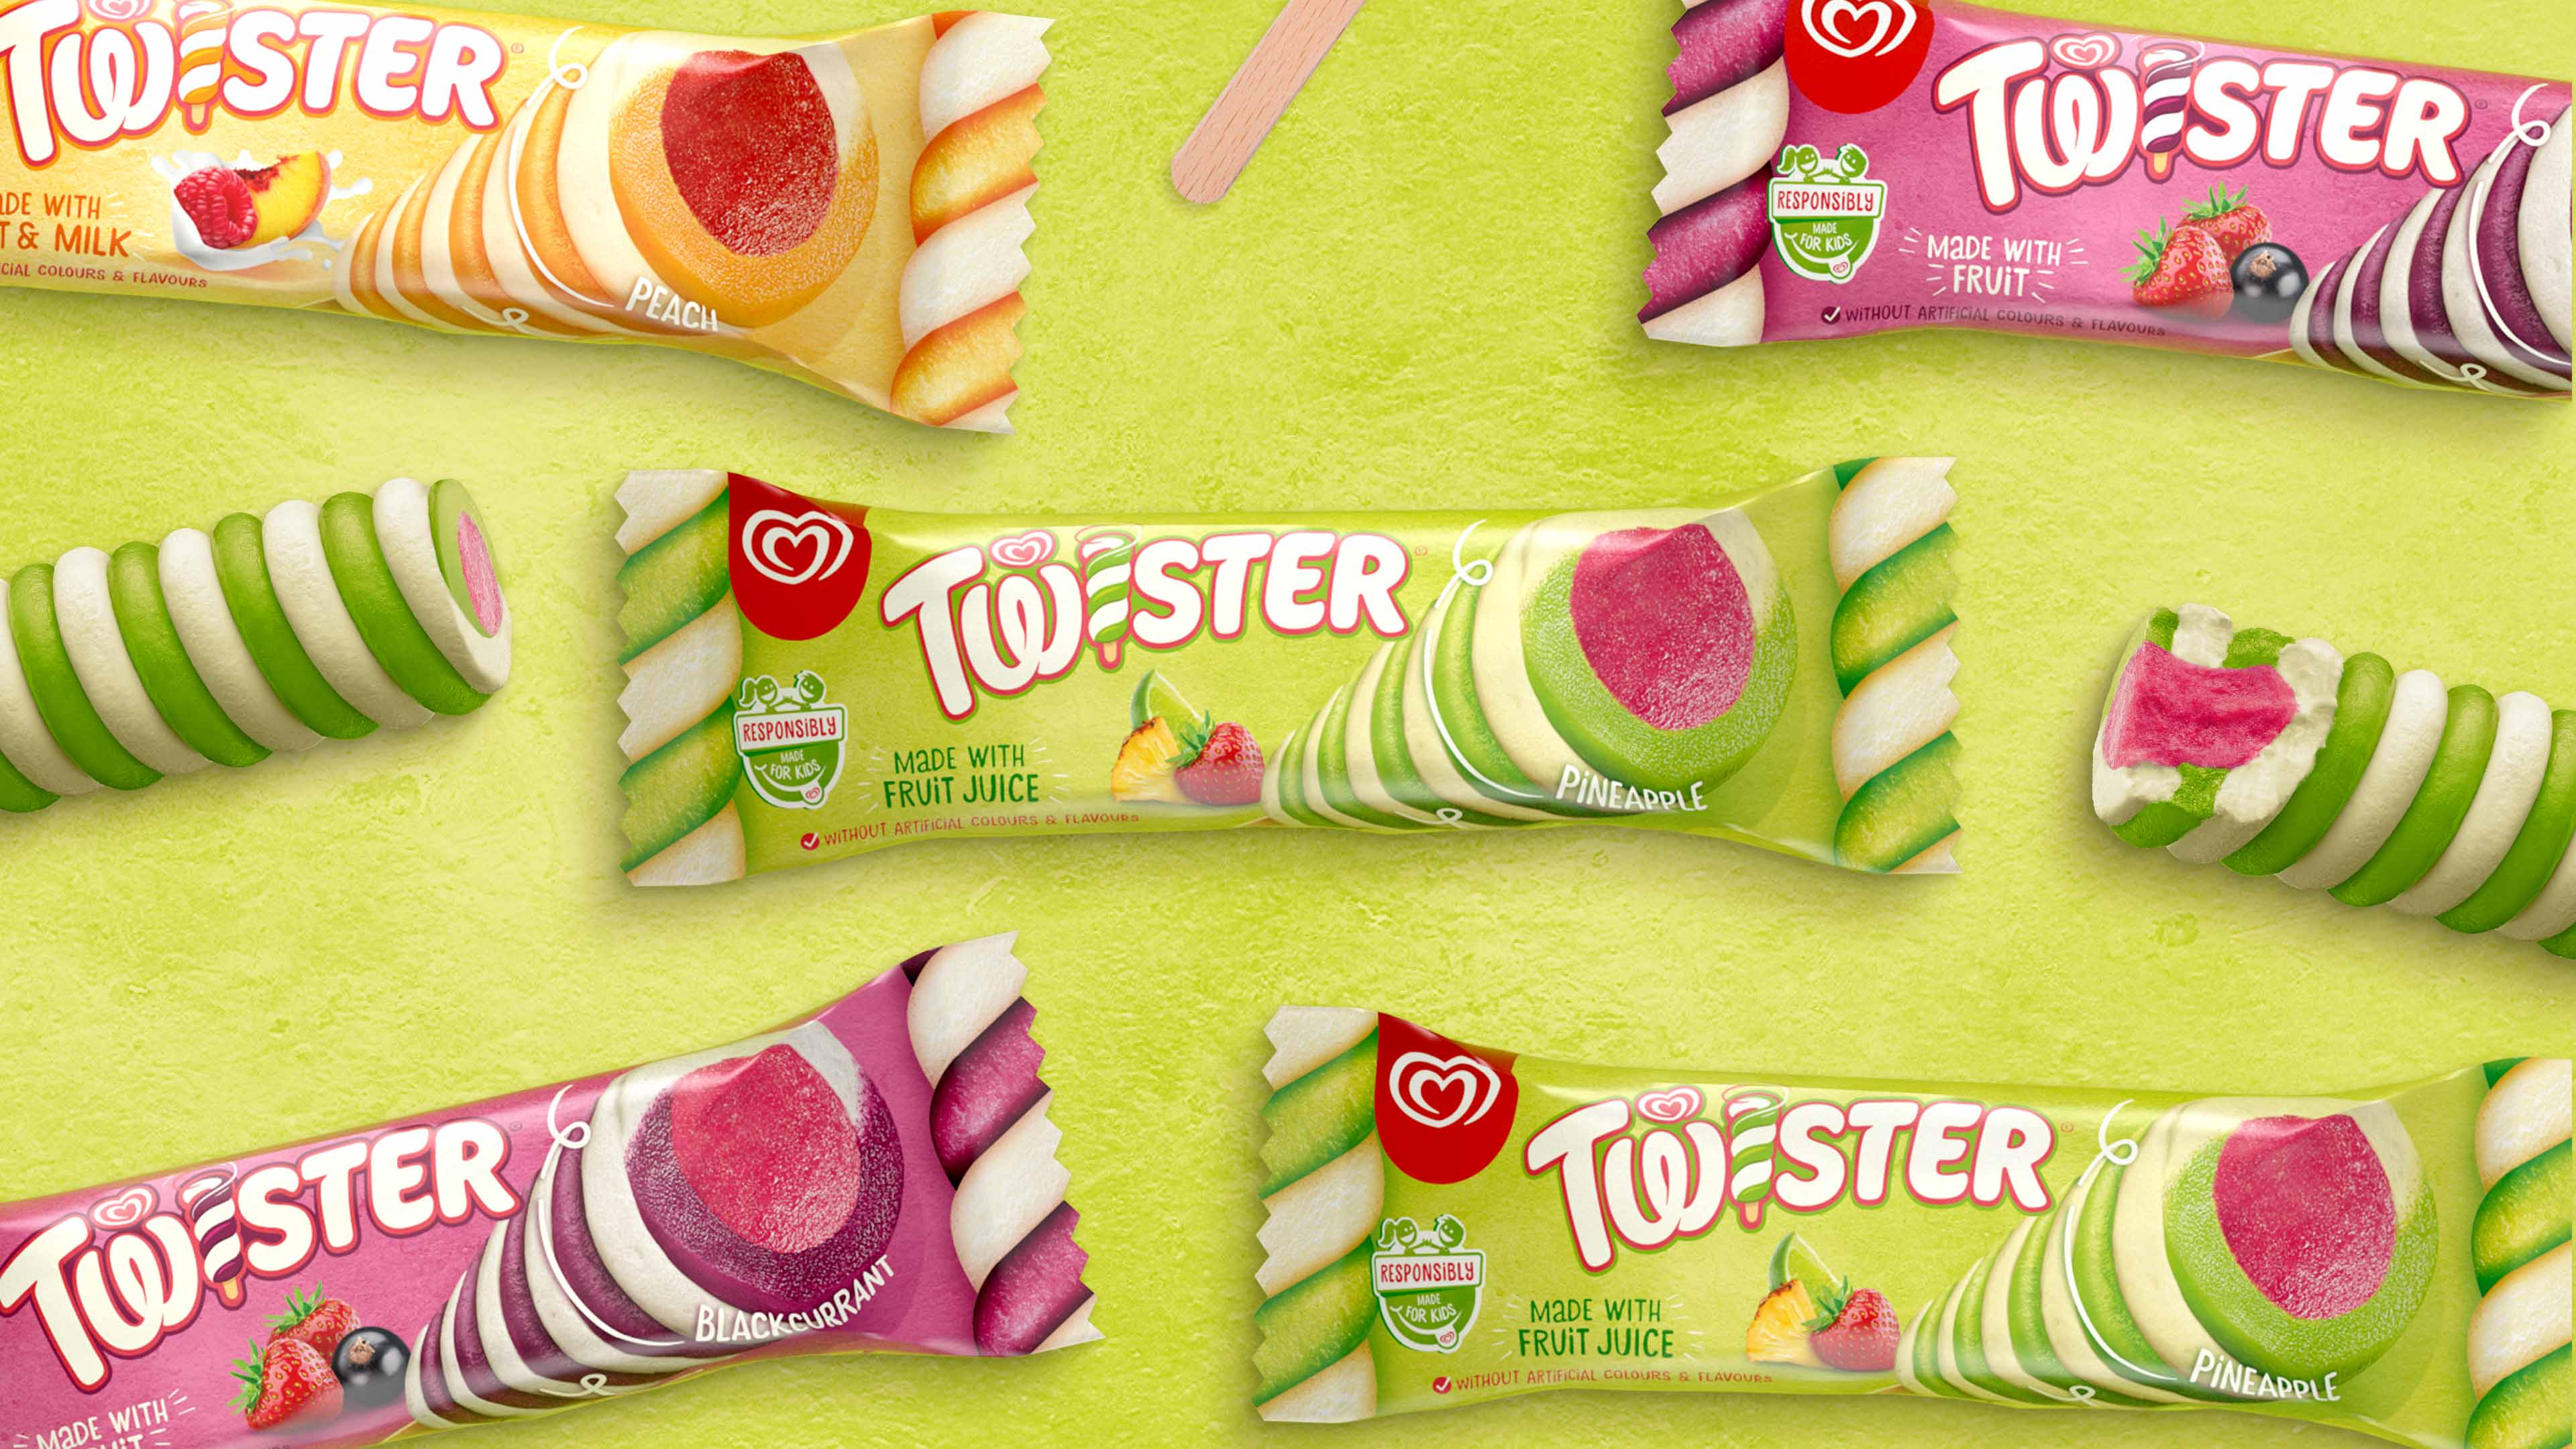 Sunhouse Gives Twister Packaging Design a Positively Different Spin